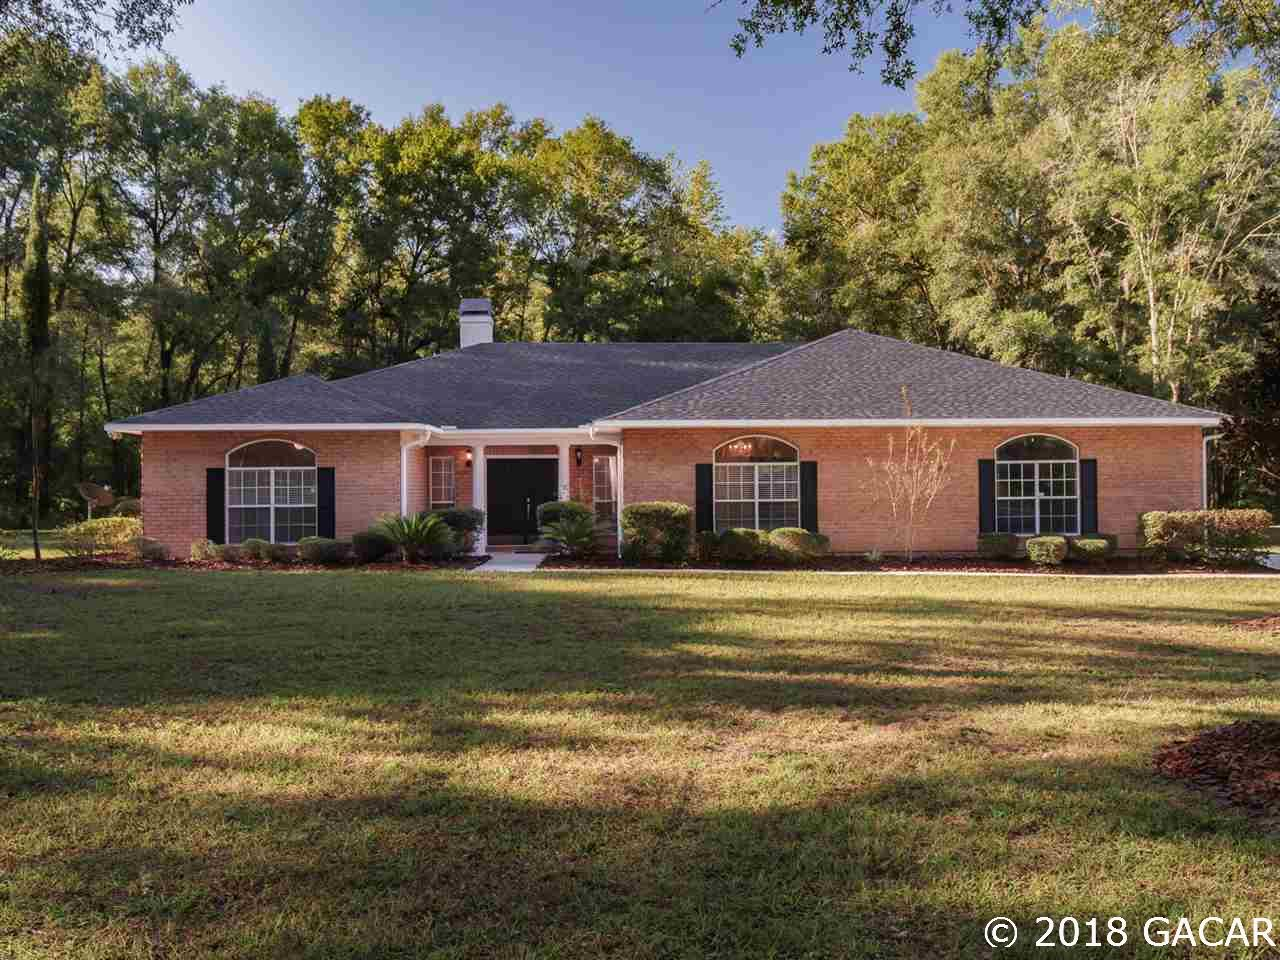 15713 Nw 58th Avenue Alachua, FL 32615